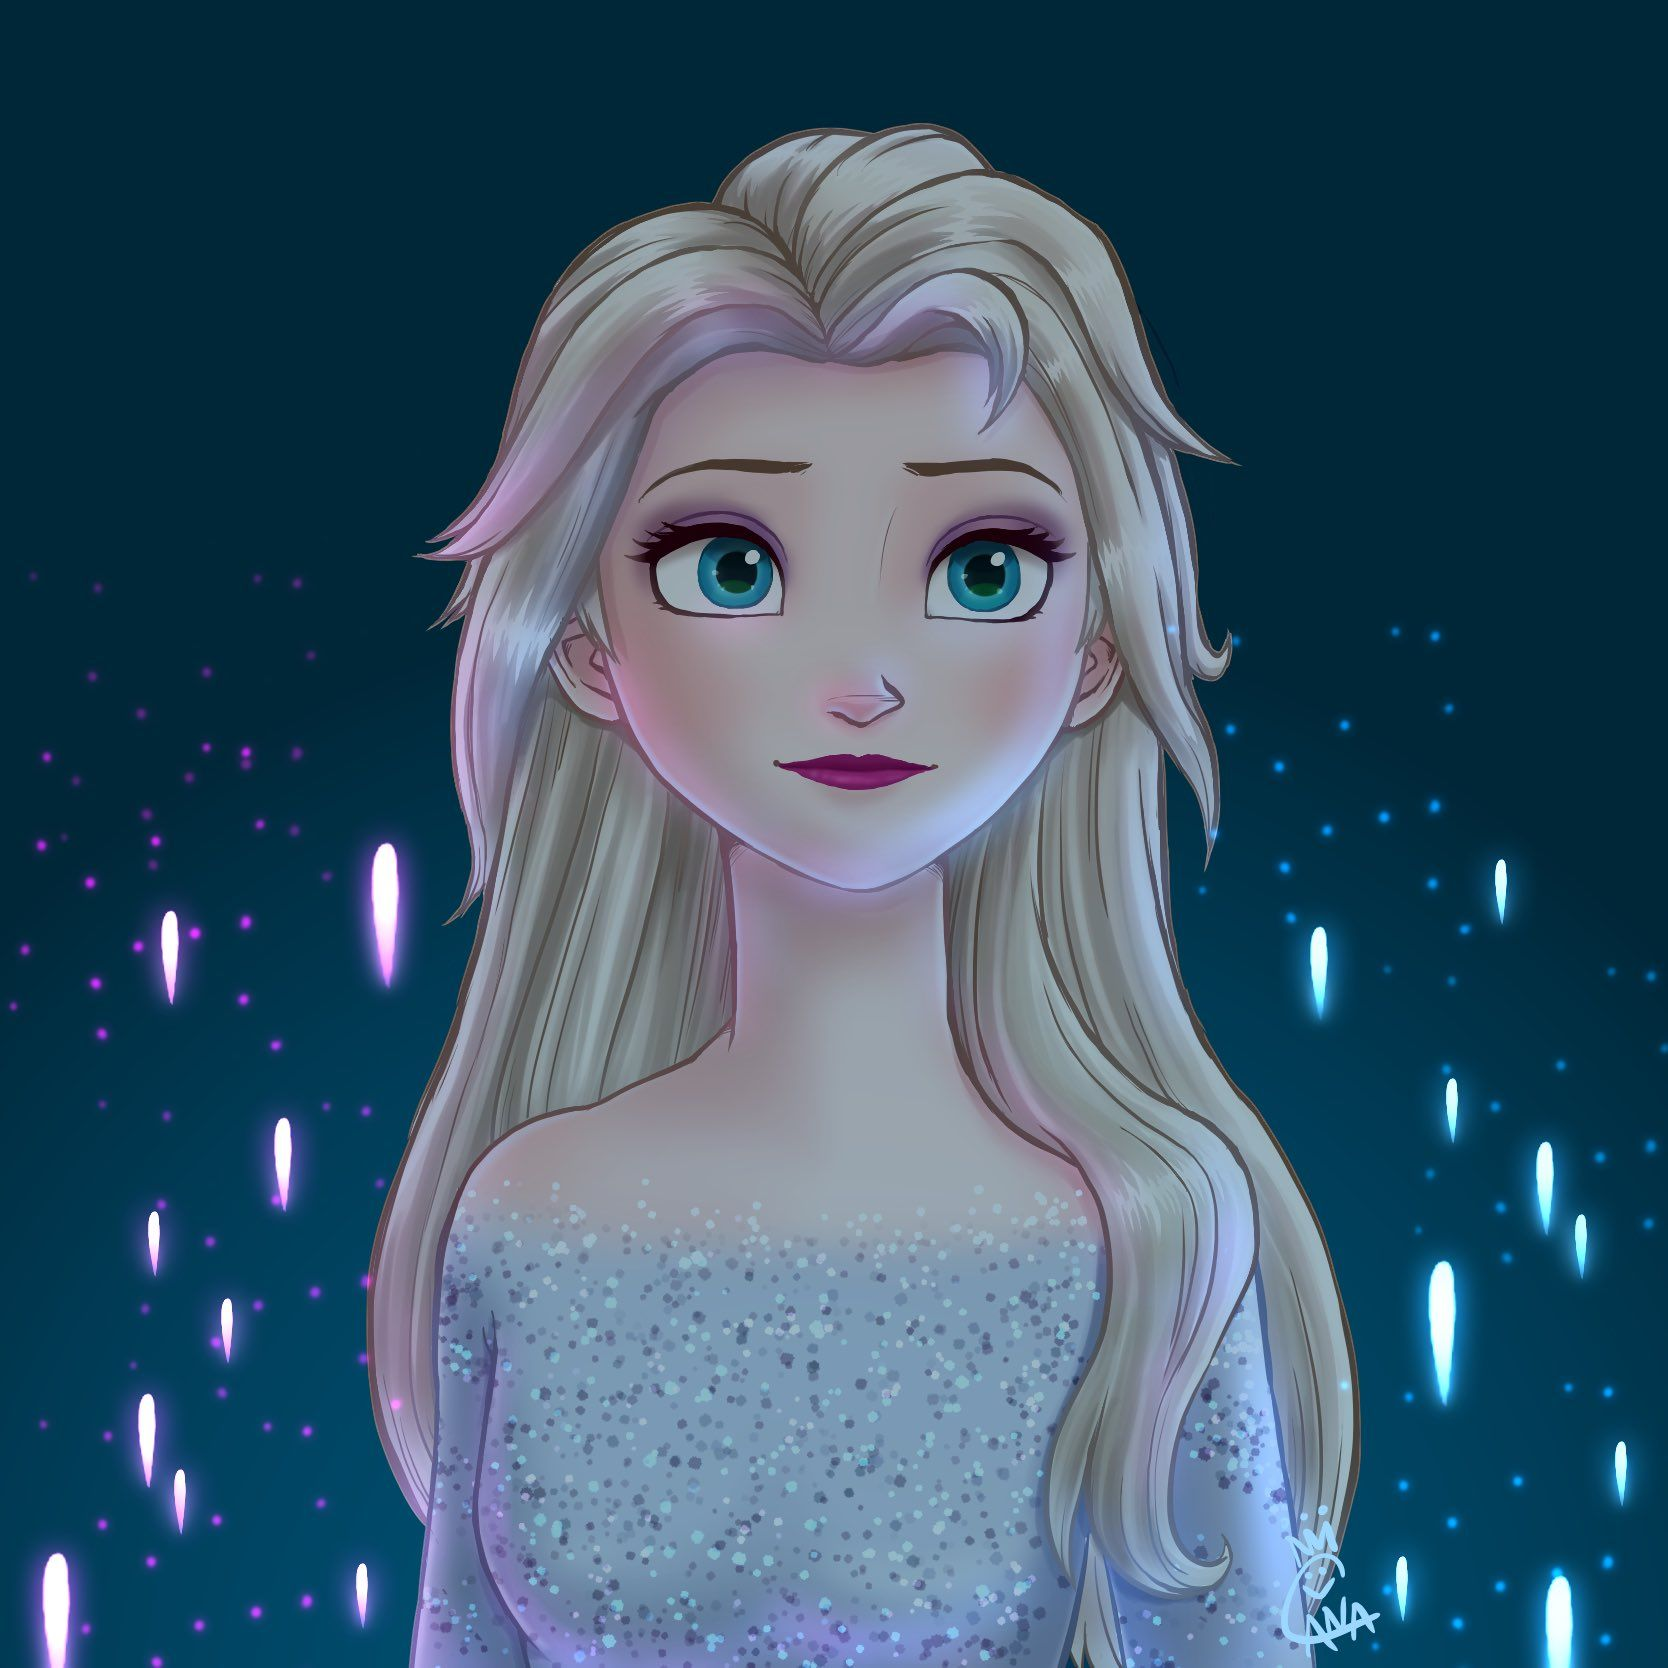 Frozen 2 Fan Art Elsa In 2020 Frozen Art Disney Princess Frozen Disney Princess Wallpaper